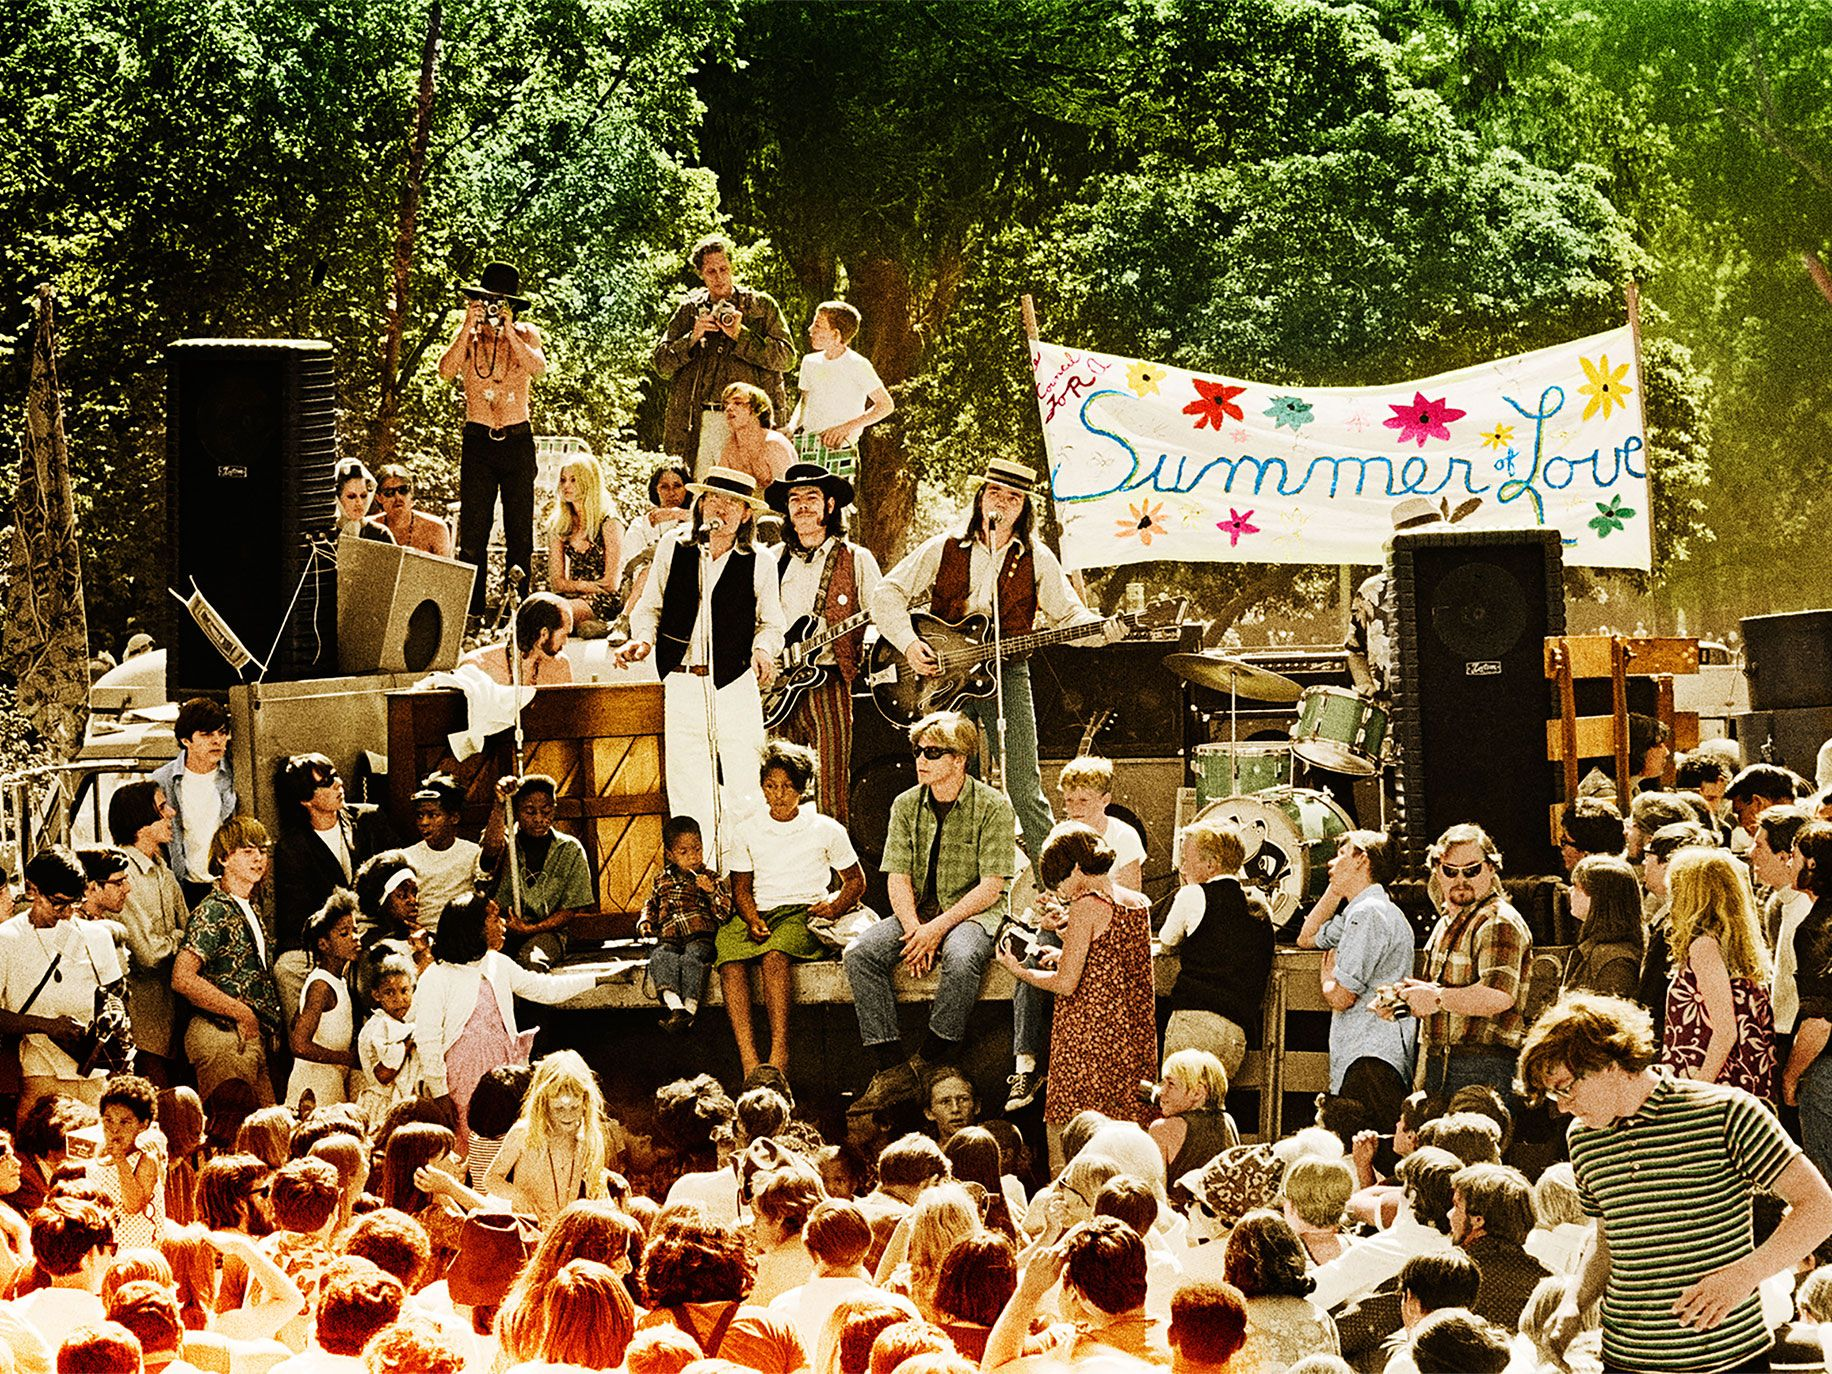 The Charlatans playing at the Summer of Love concert in Golden Gate Park, San Francisco, 1967.